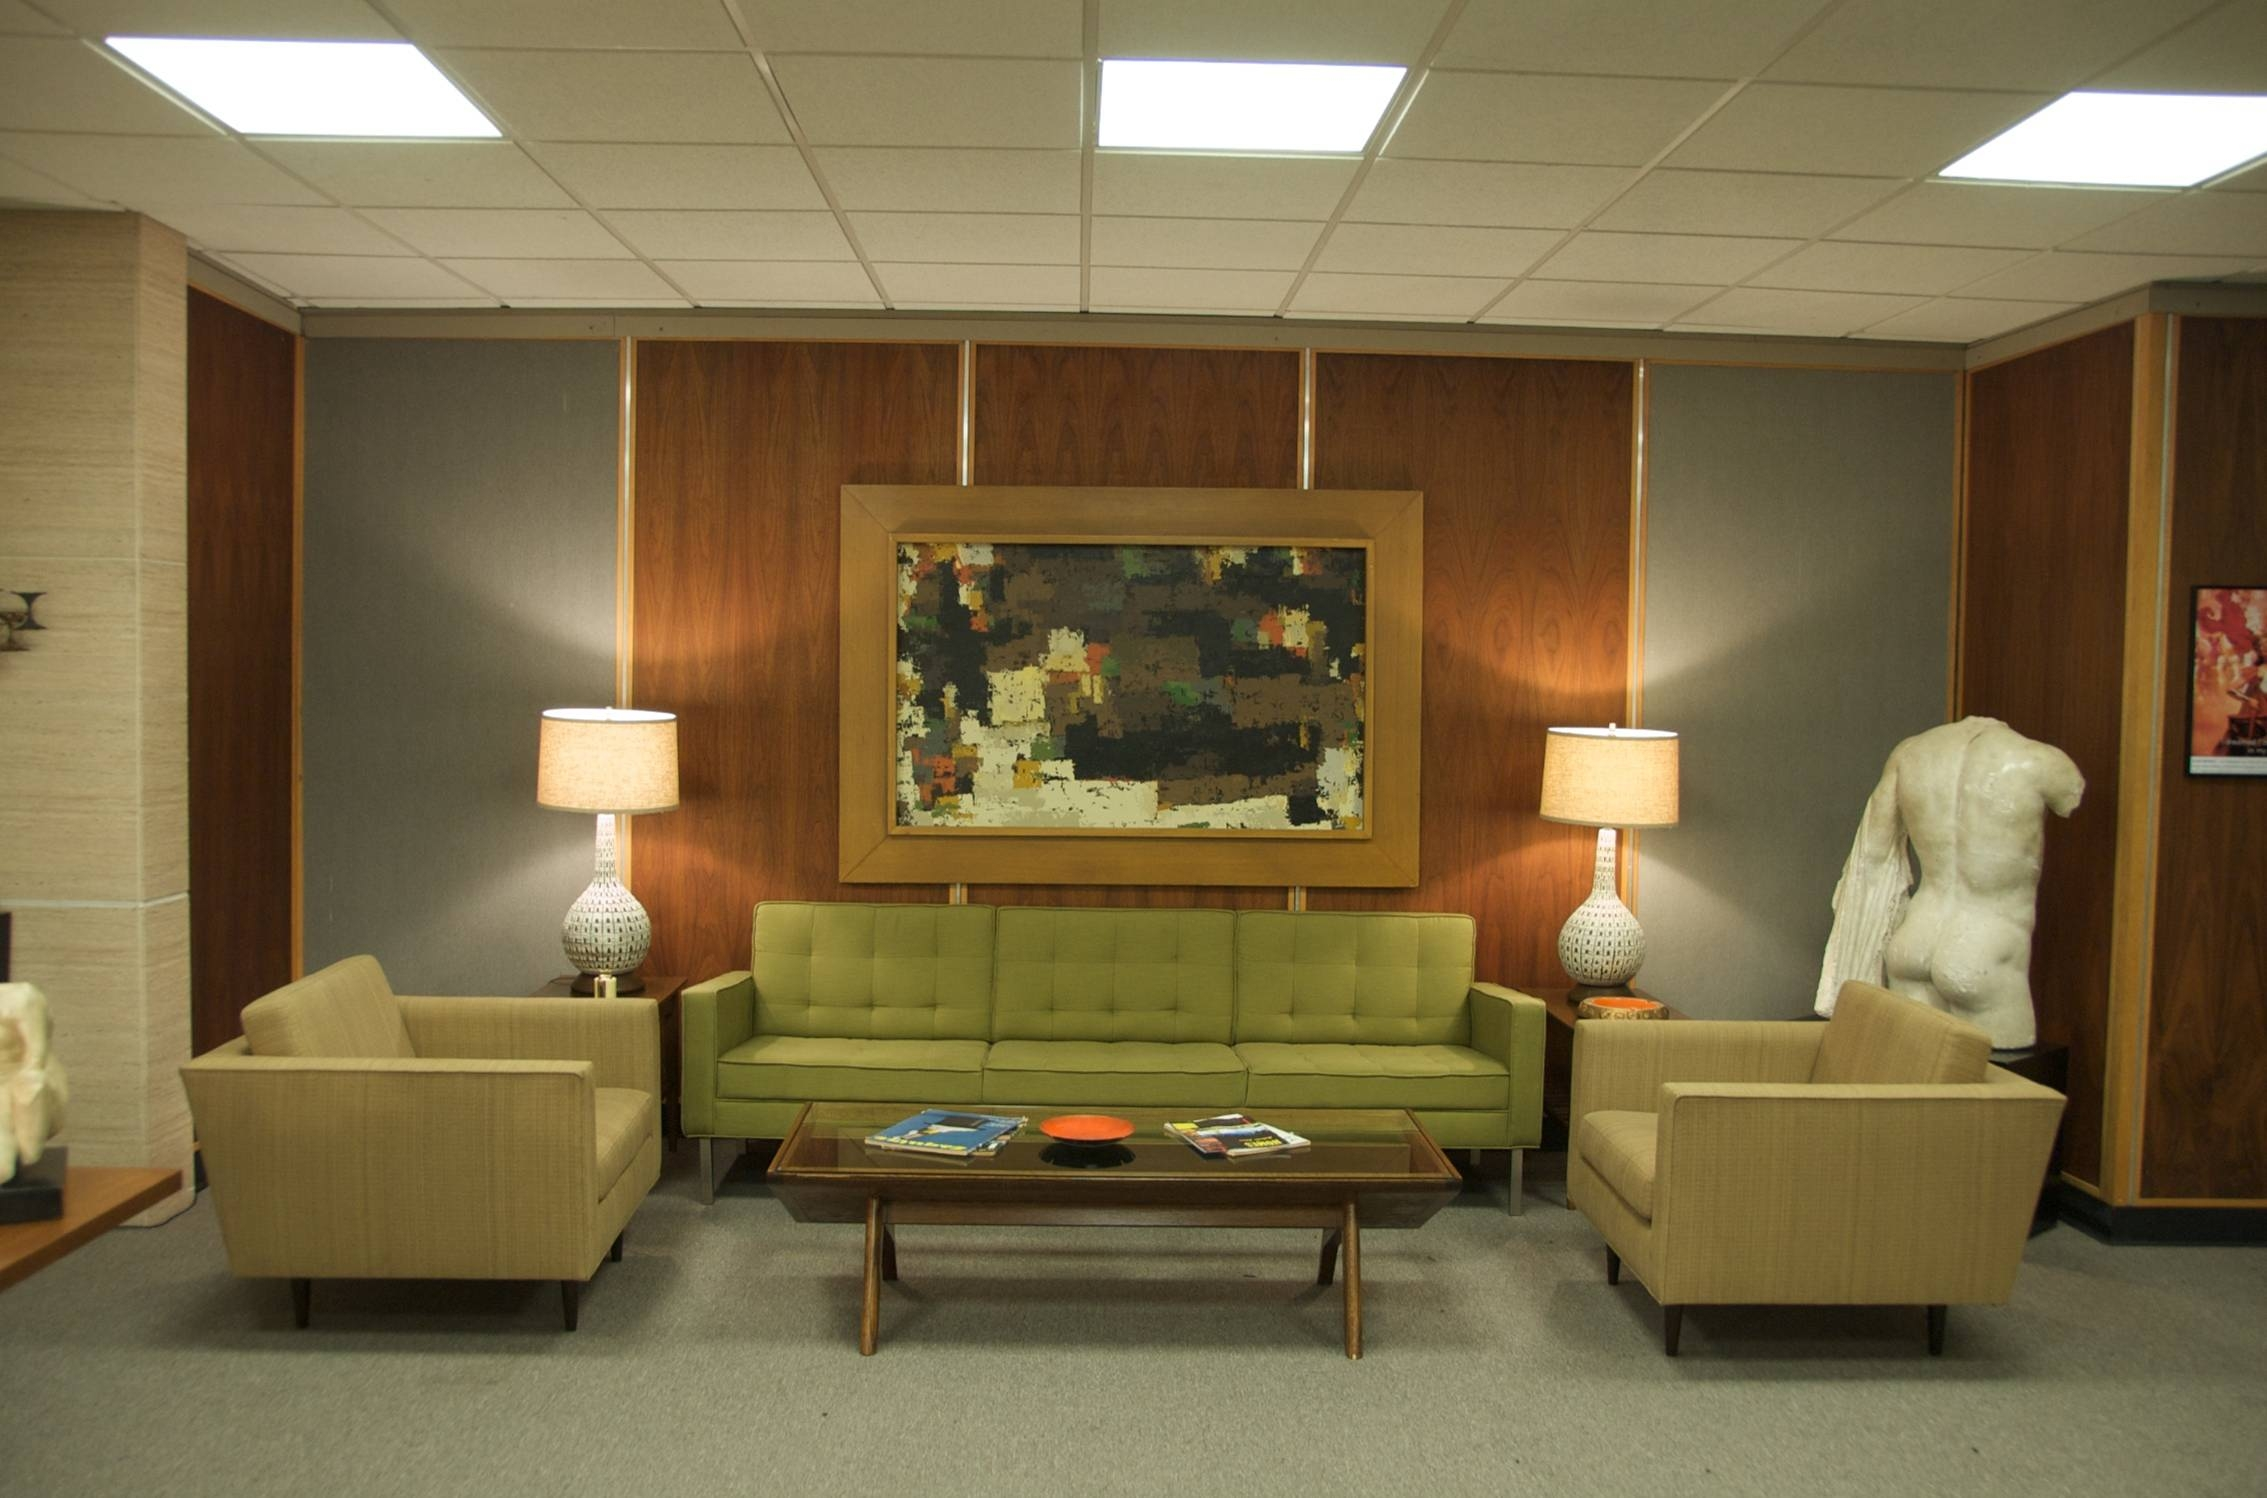 Roger Sterling Office To Iconic Office Move Uship Is Transporting The Desk Table And Sofa Of Mad Menu0027s Roger Sterling Providing Free Shipping Vintage Furniture Props For